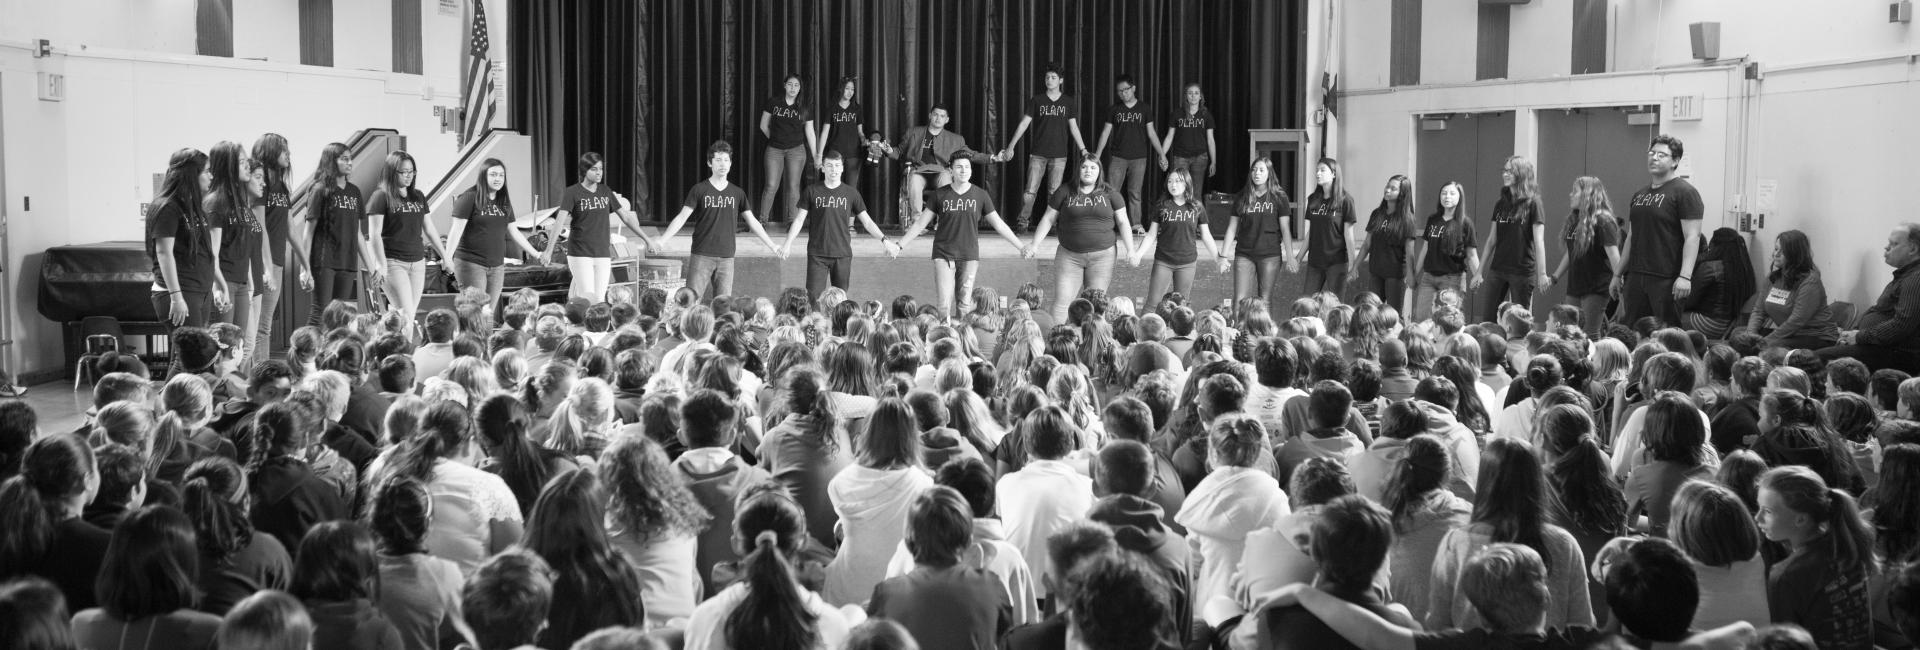 Image of 'Powerful' anti-bullying assembly at Crocker-Riverside